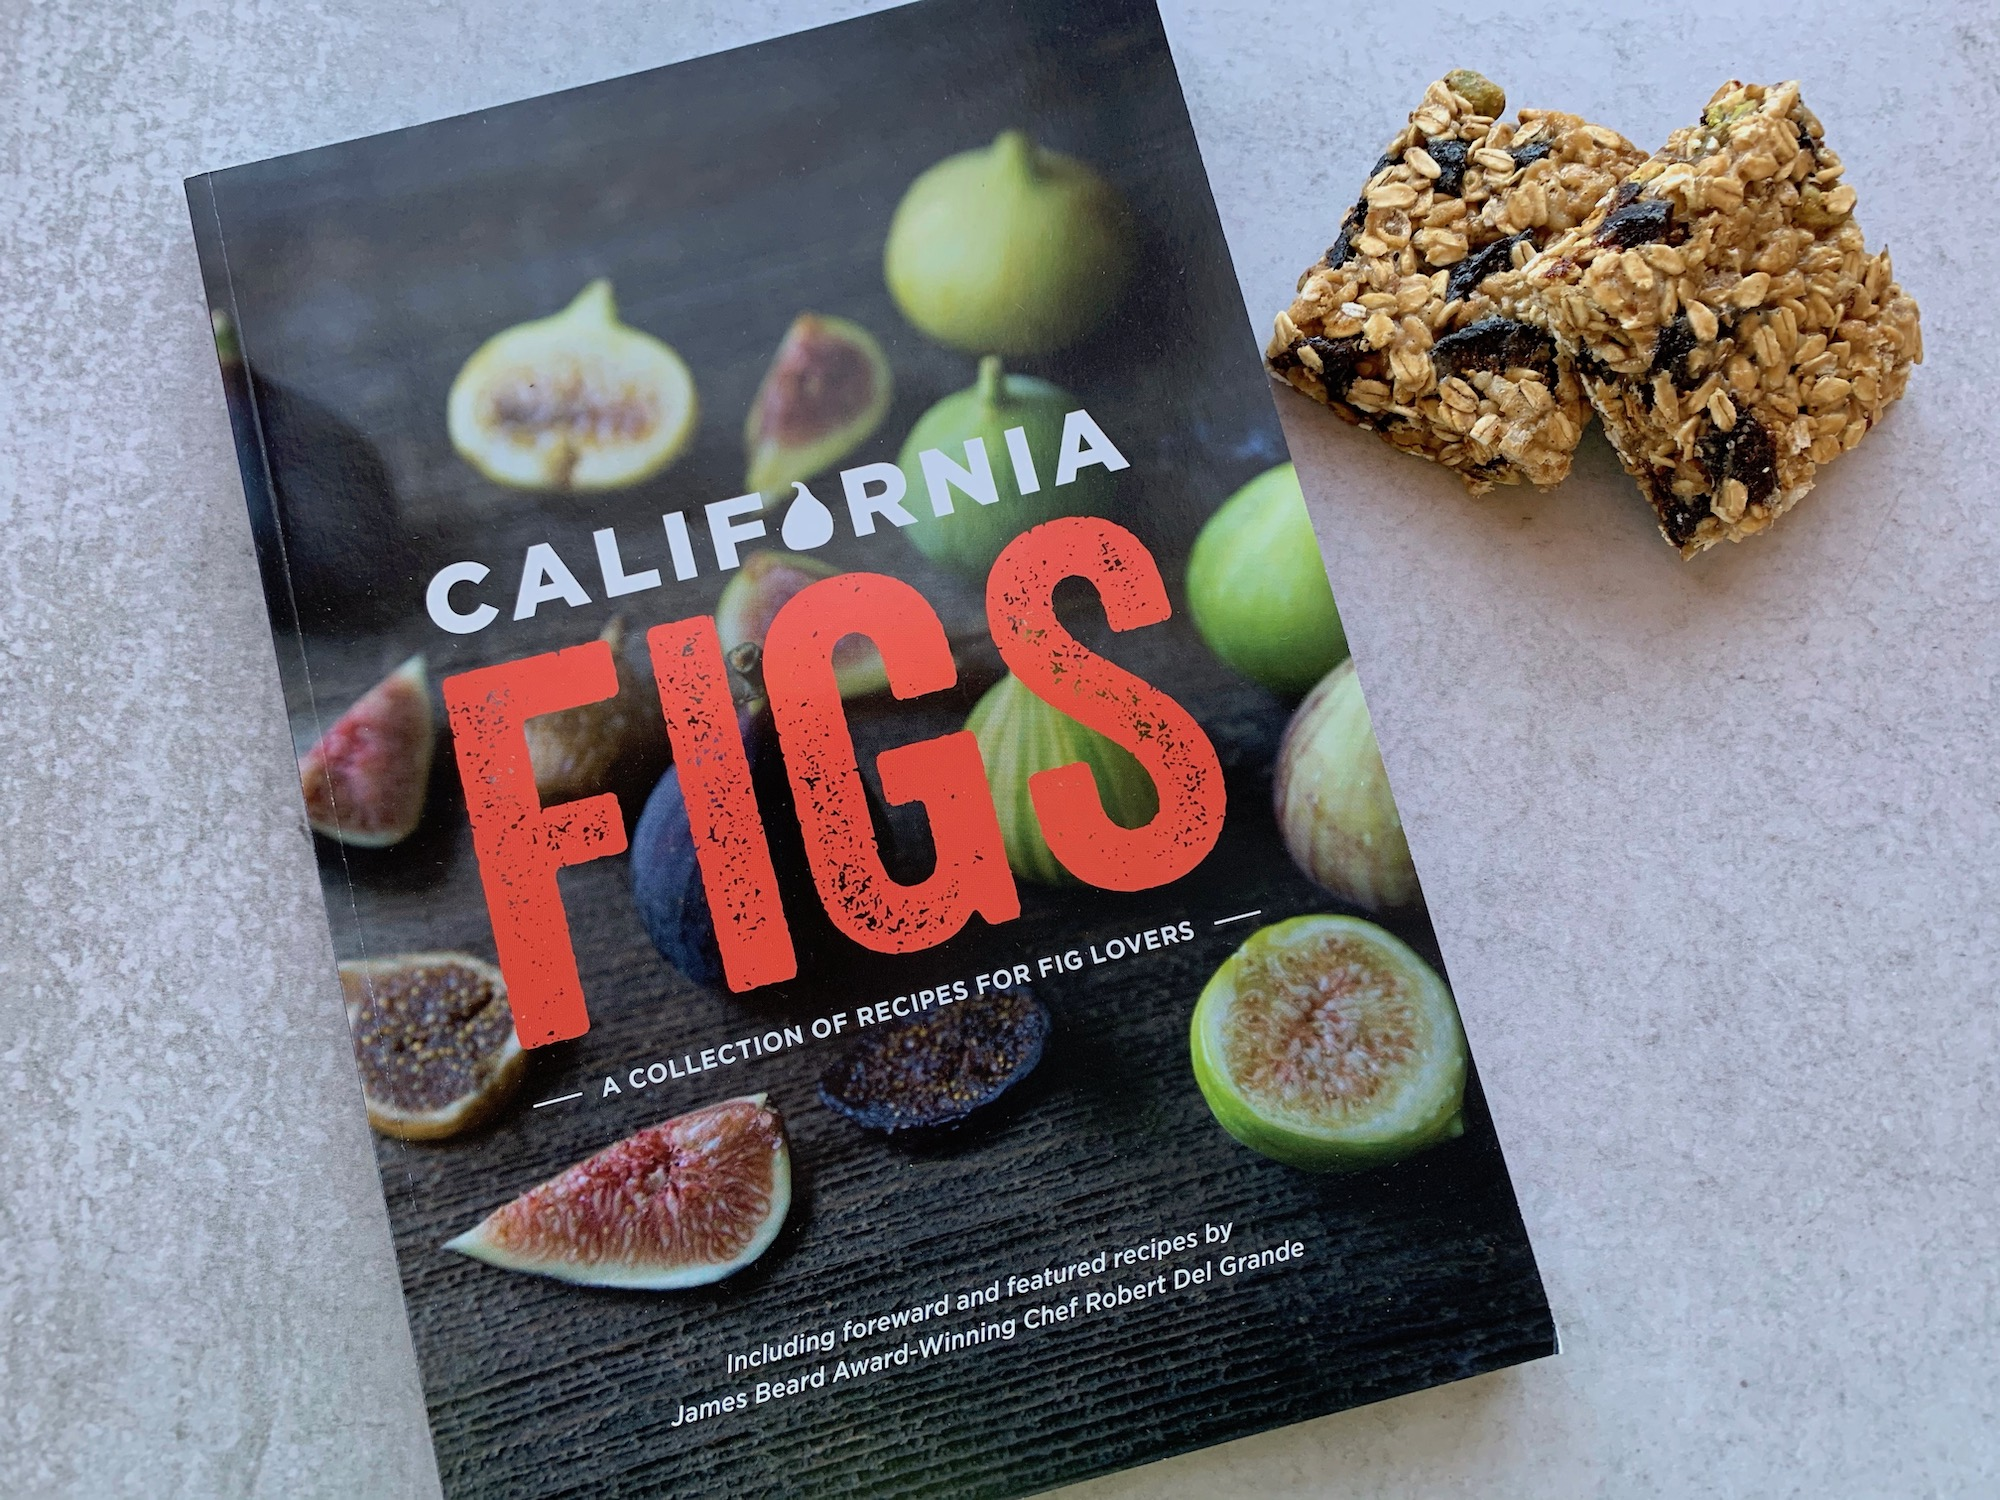 Fig bar recipe, Dried figs recipe, Healthy dried fig recipe, Healthy fig bars, Dried mission figs, Holiday fig recipe, Thanksgiving fig recipe, Fig recipes, vegan, Vegan snack, vegan bar, Ca figs, California figs, Dried figs, Cooking with figs, Baking with figs, Thanksgiving snack, Kid friendly snack, Holiday snack, Holiday recipe, Breakfast bar